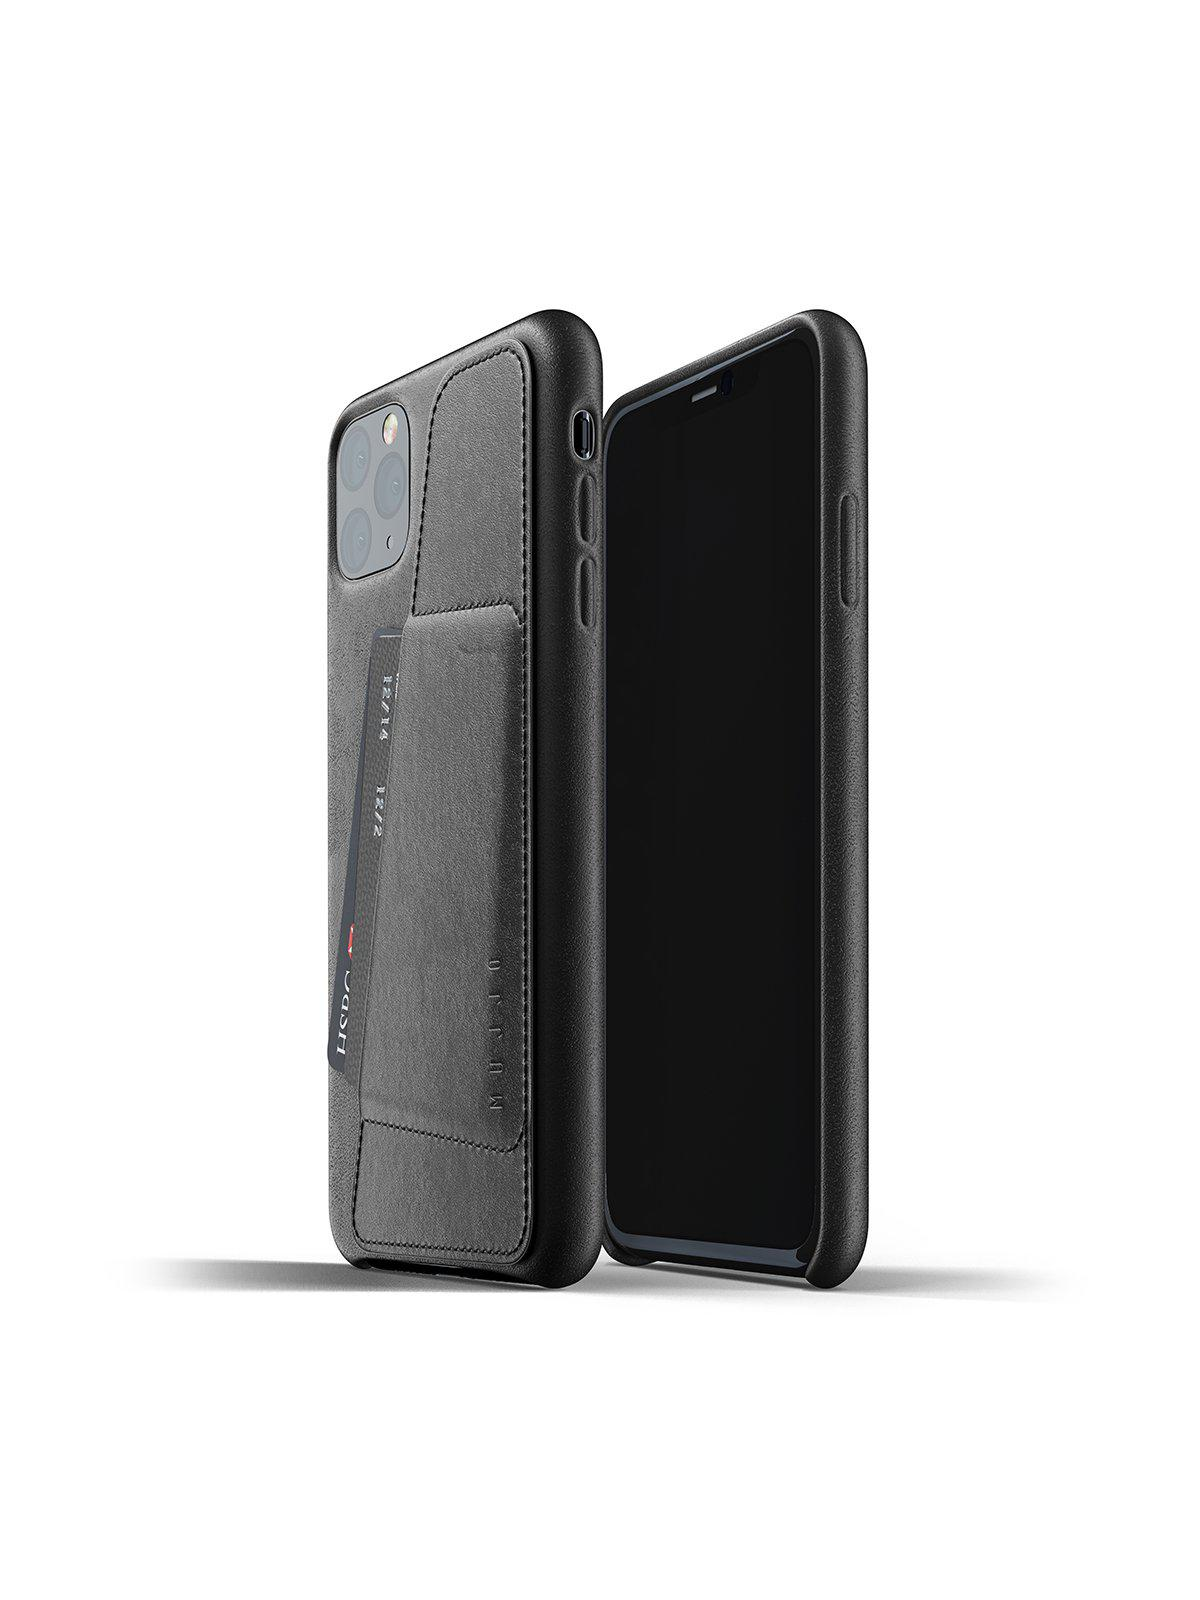 Mujjo Full Leather Wallet Case for iPhone 11 Pro Max Black - MORE by Morello Indonesia